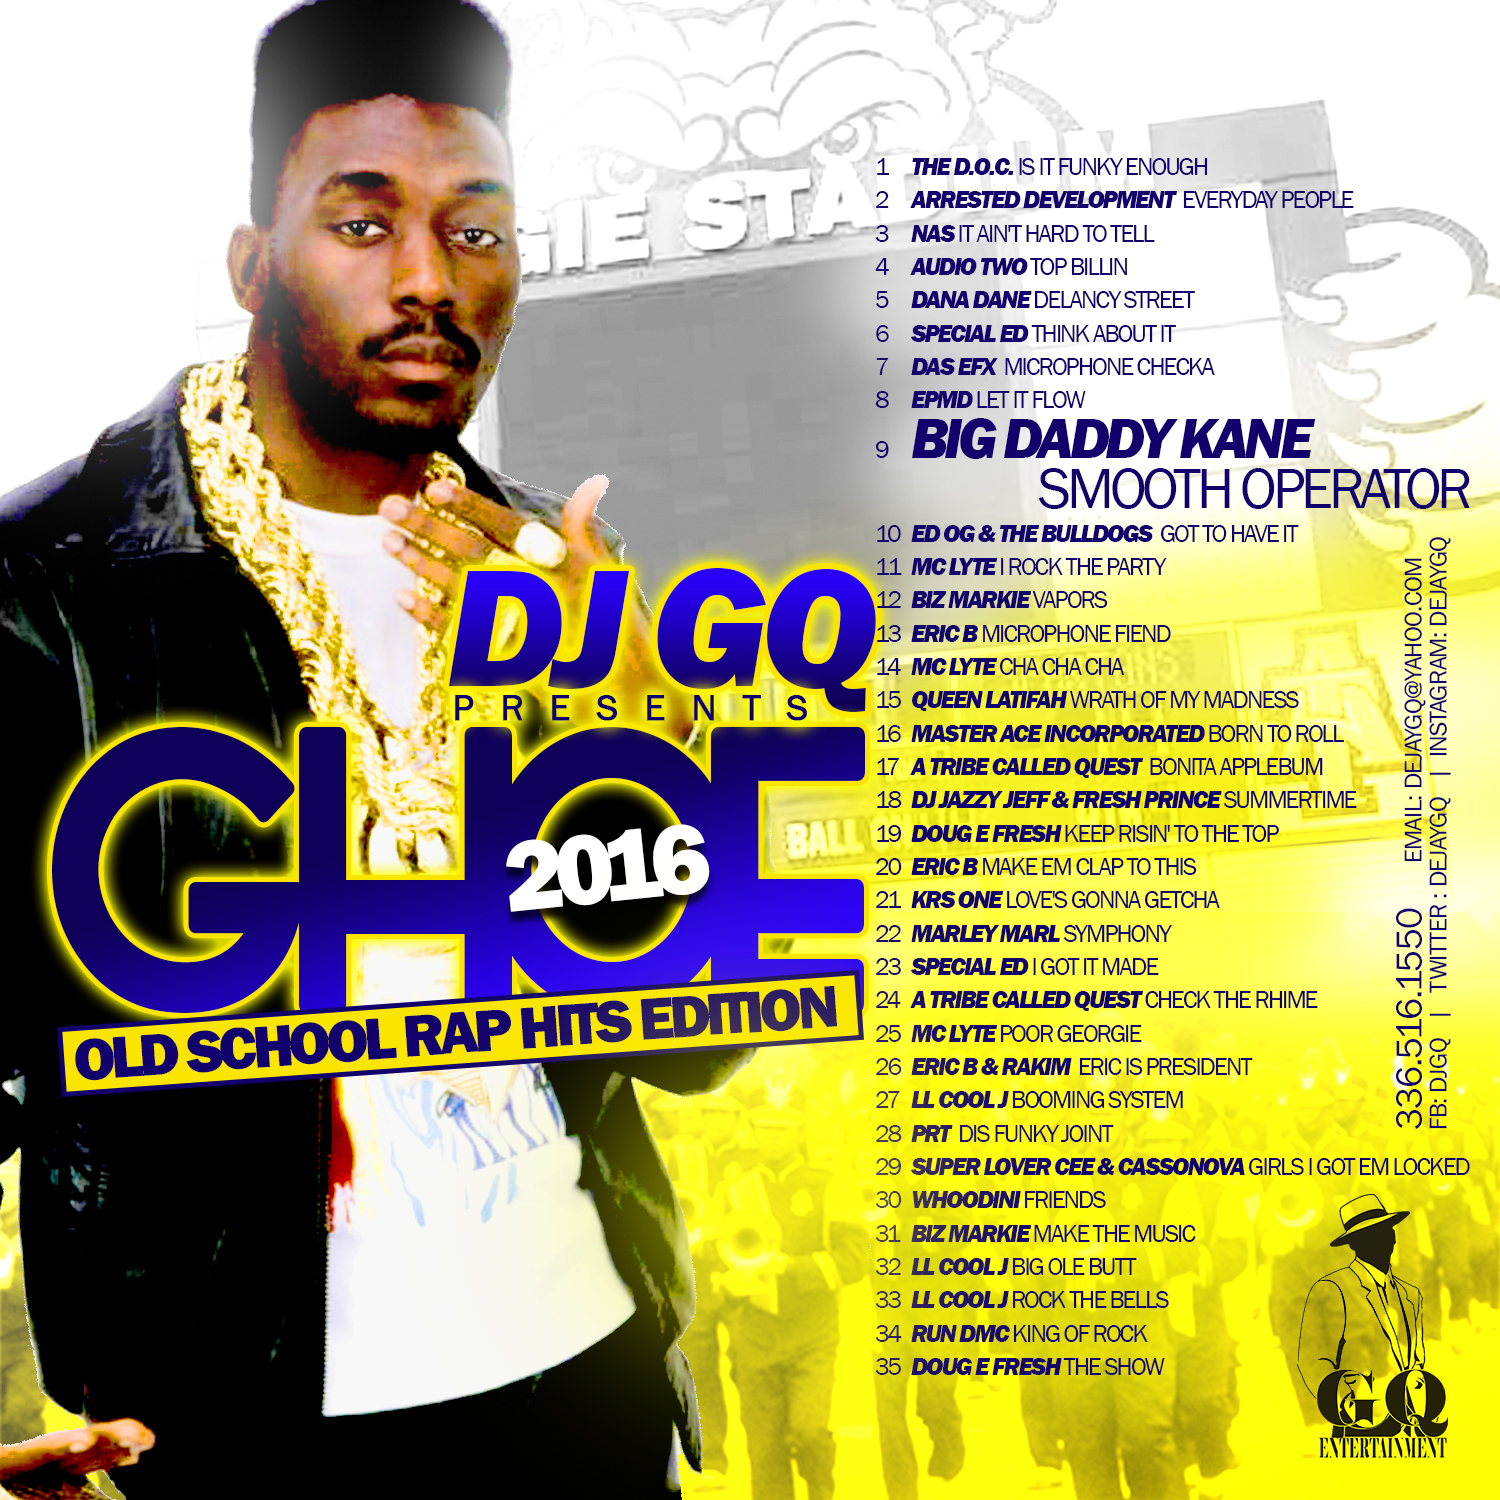 DJ GQ GHOE 2016 OLD SCHOOL RAP EDITION